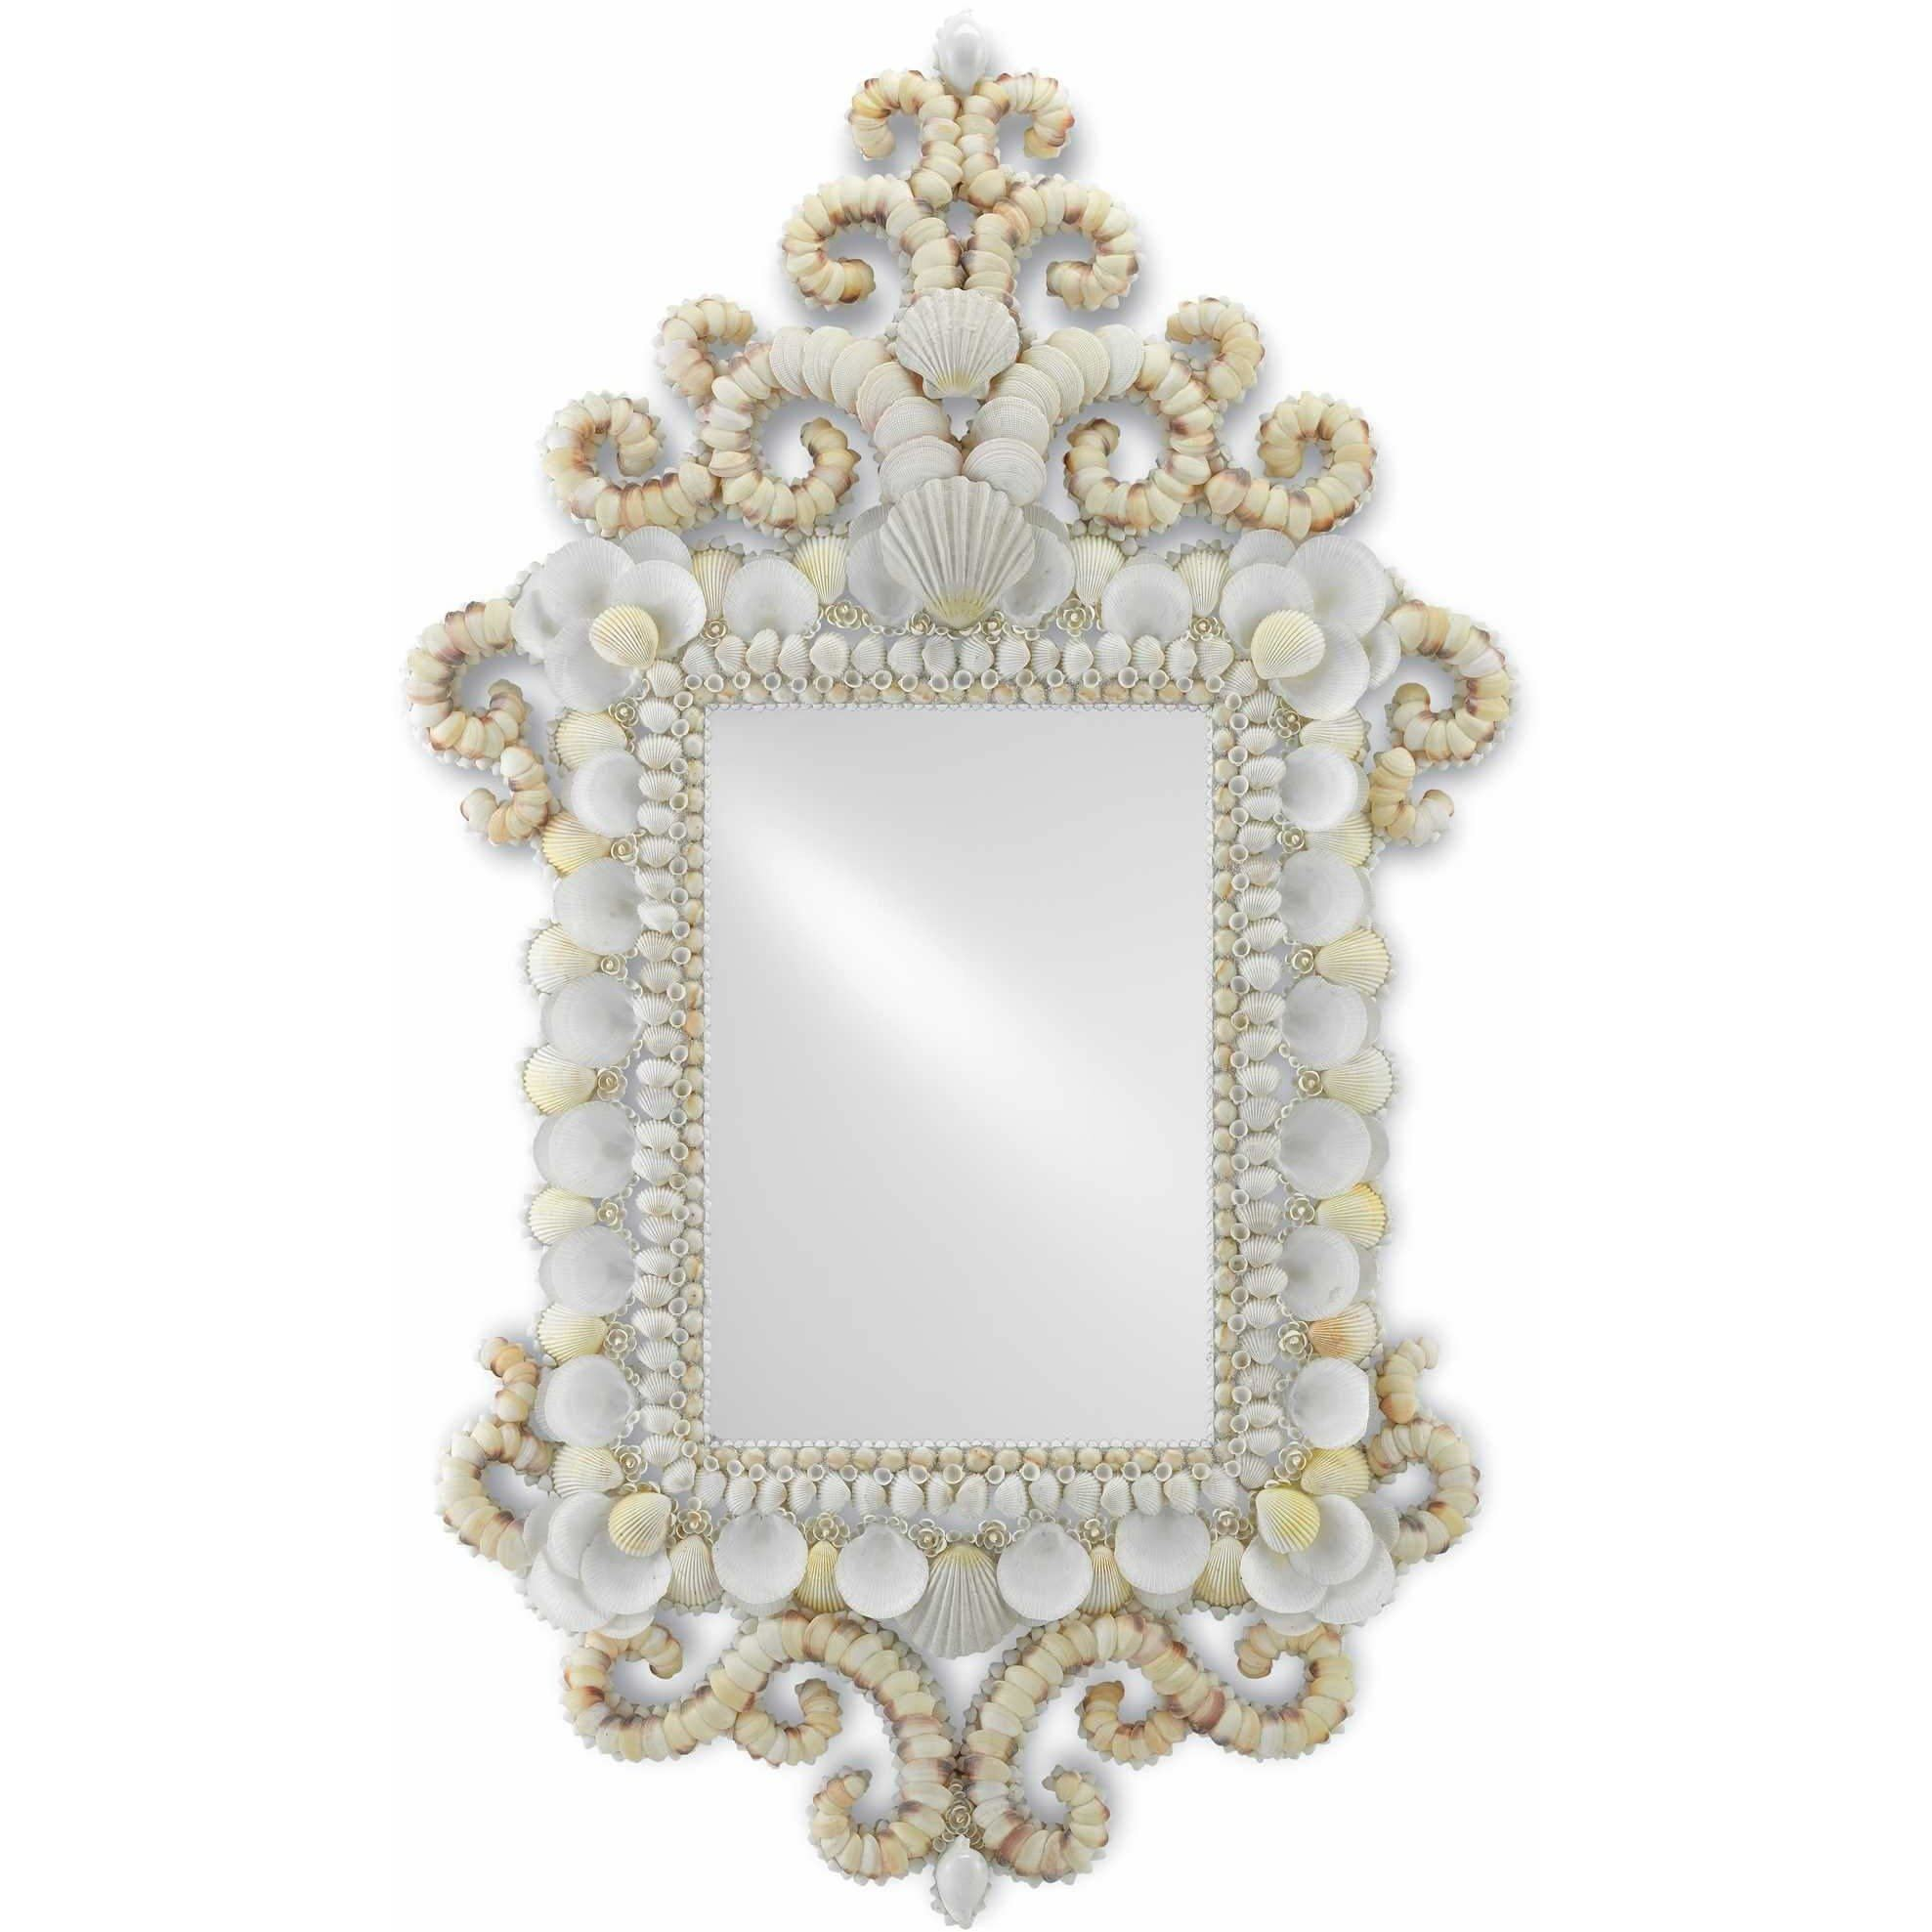 Currey and Company Cecilia Mirror 1000-0028 - LOVECUP